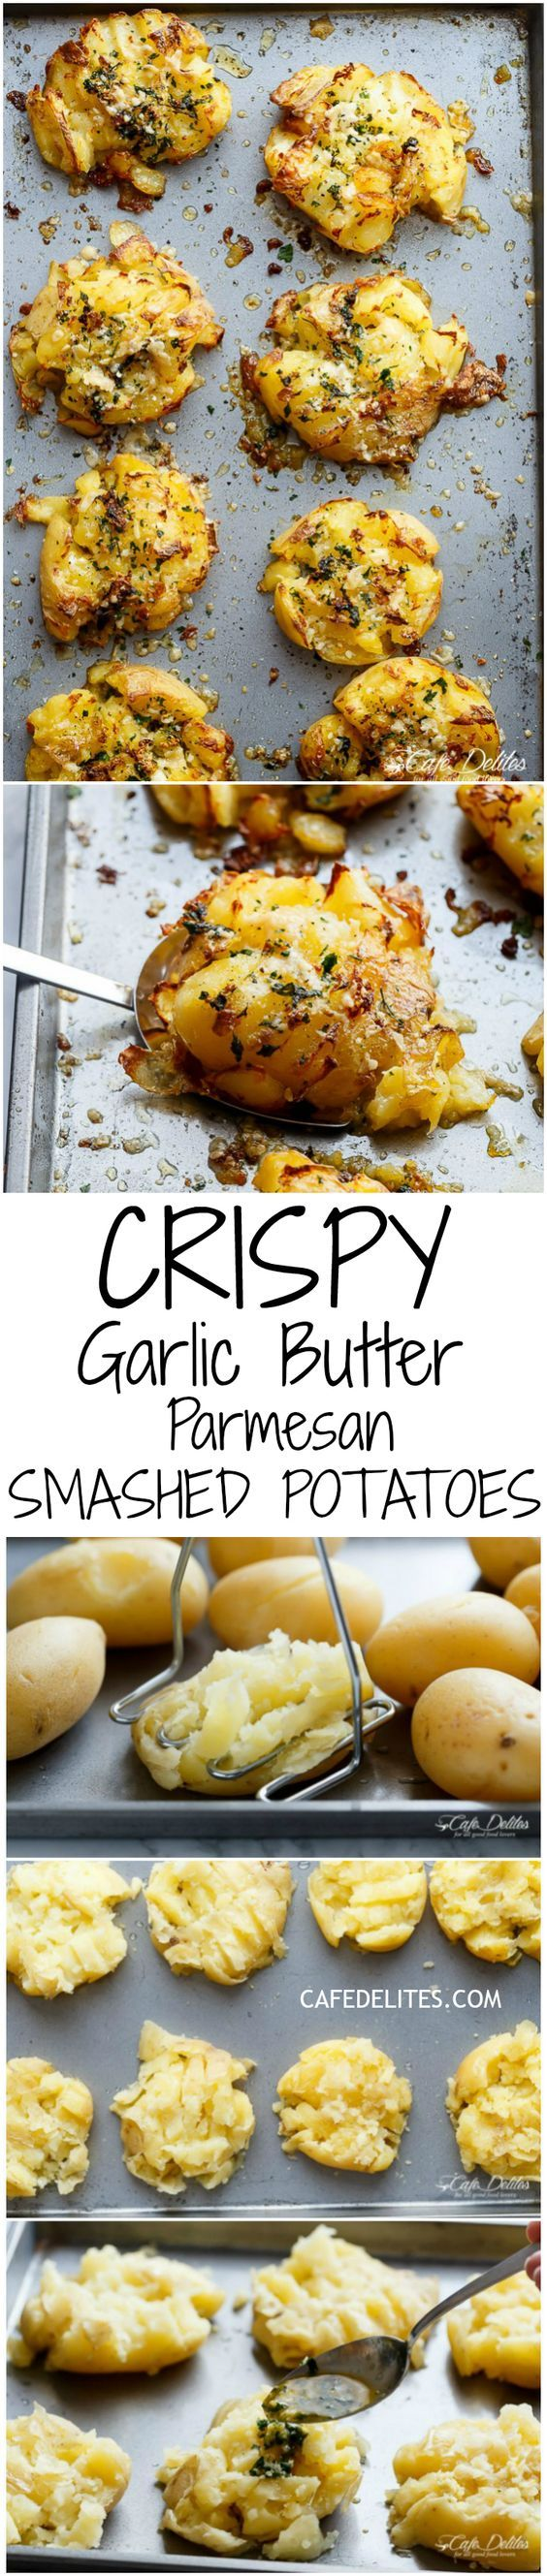 Crispy Garlic Butter Parmesan Smashed Potatoes are fluffy on the inside and…